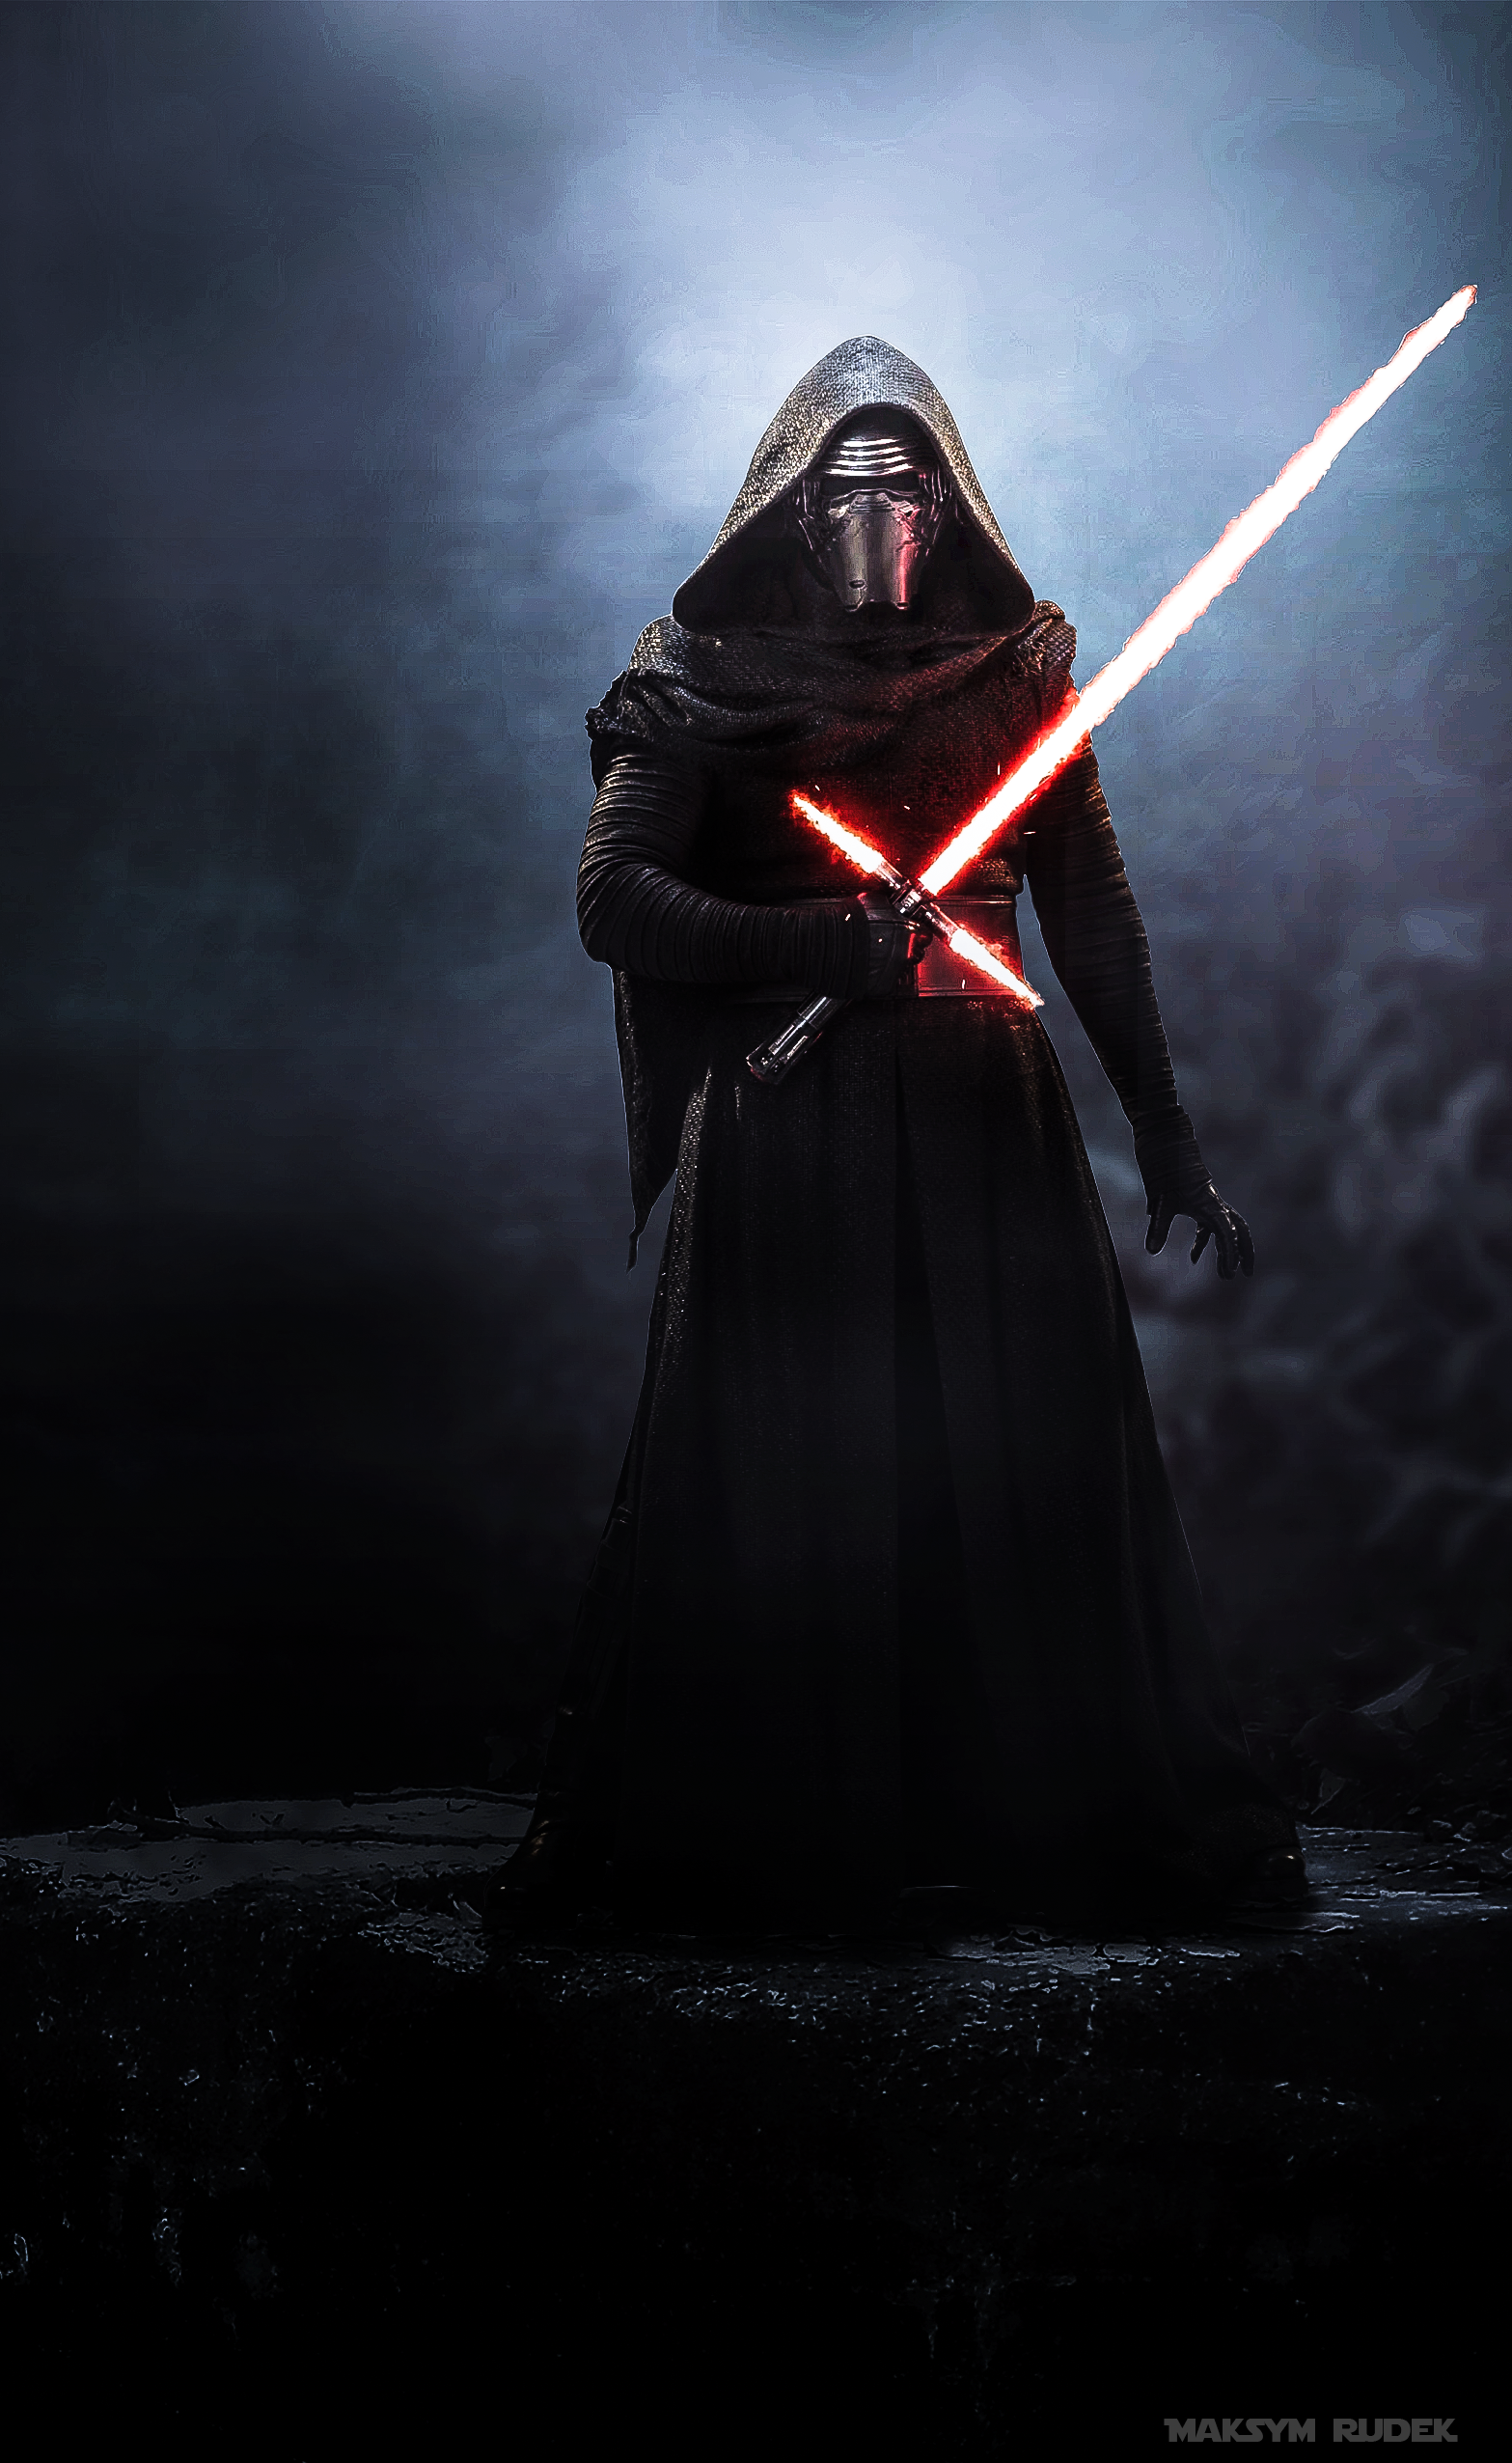 kylo ren smartphone wallpaper arts pinterest. Black Bedroom Furniture Sets. Home Design Ideas